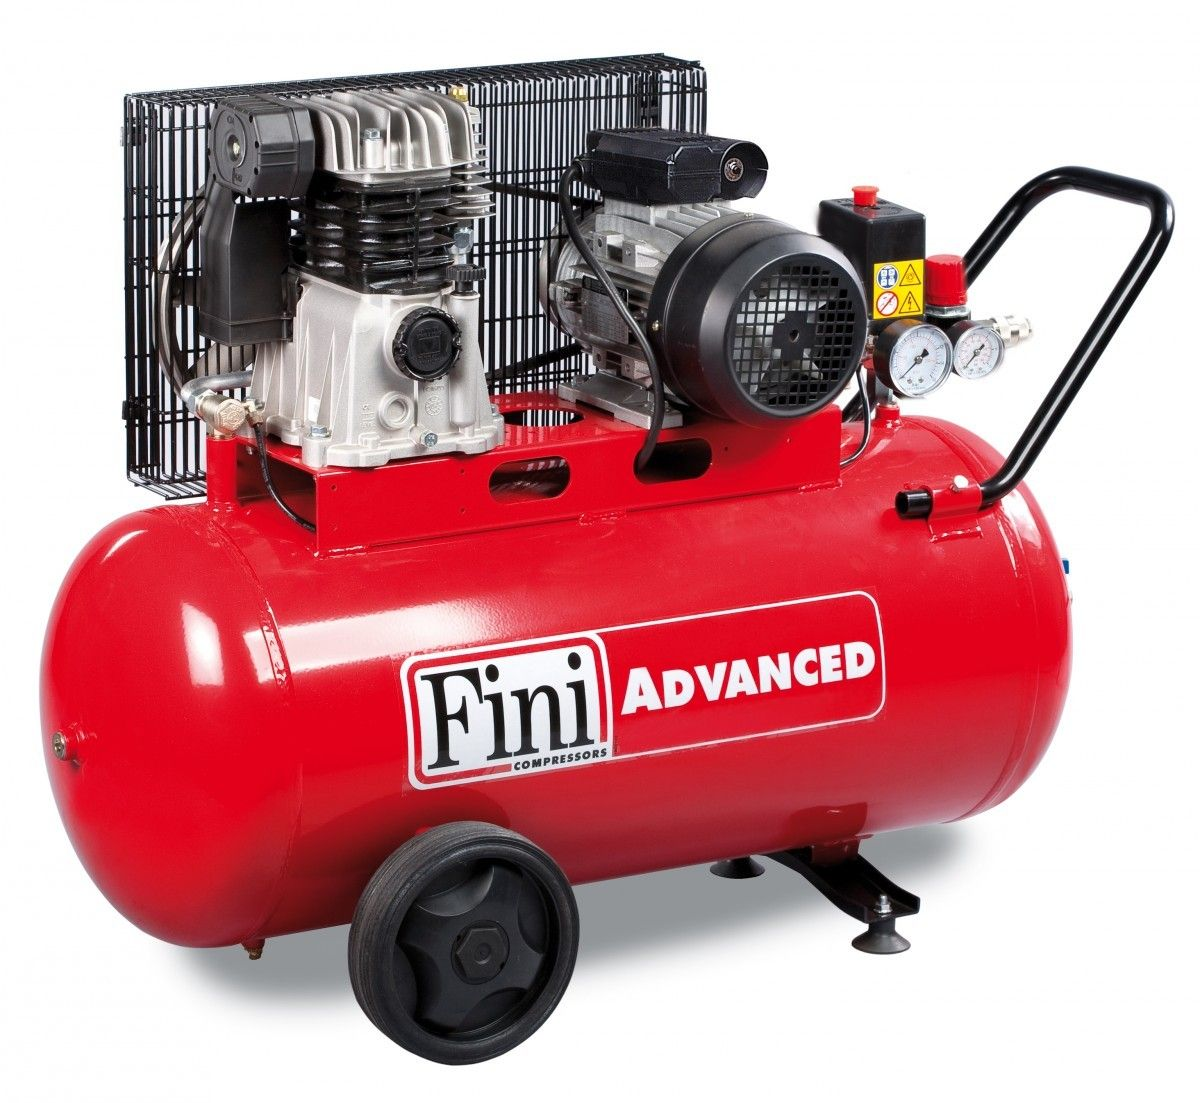 Fini MK103-200-3 ADVANCED